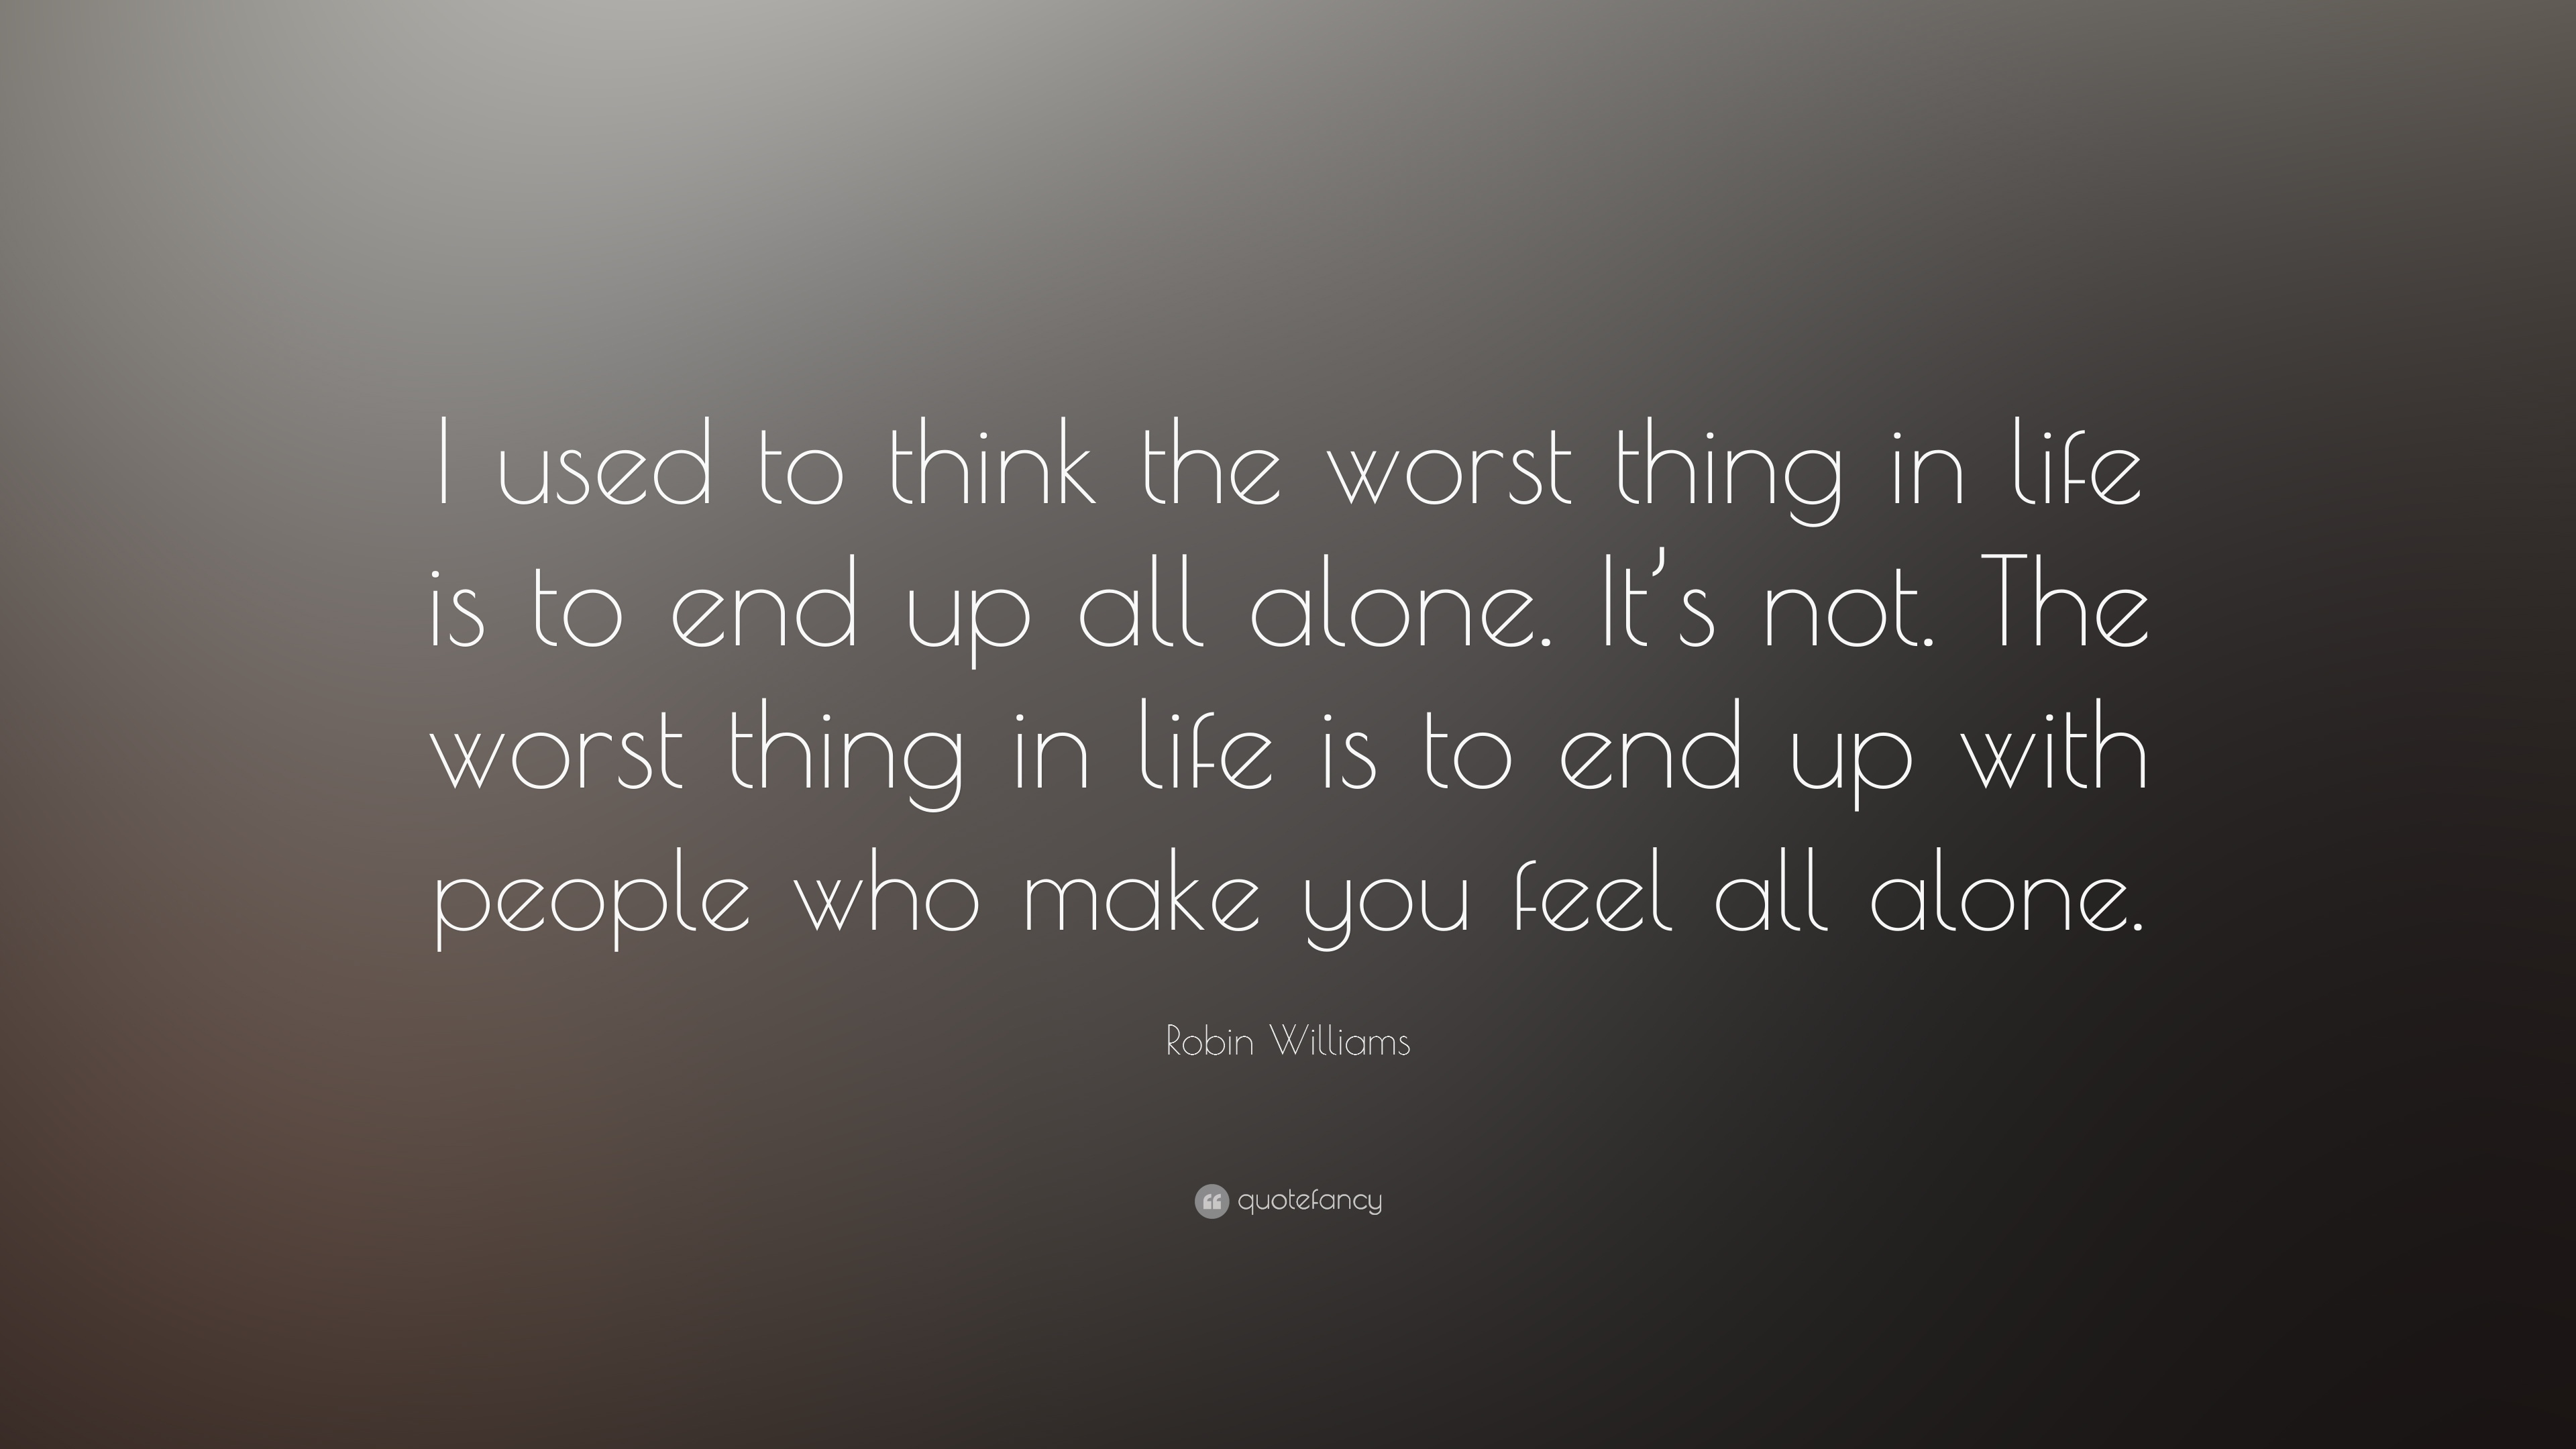 Robin Williams Quote I Used To Think The Worst Thing In Life Is To